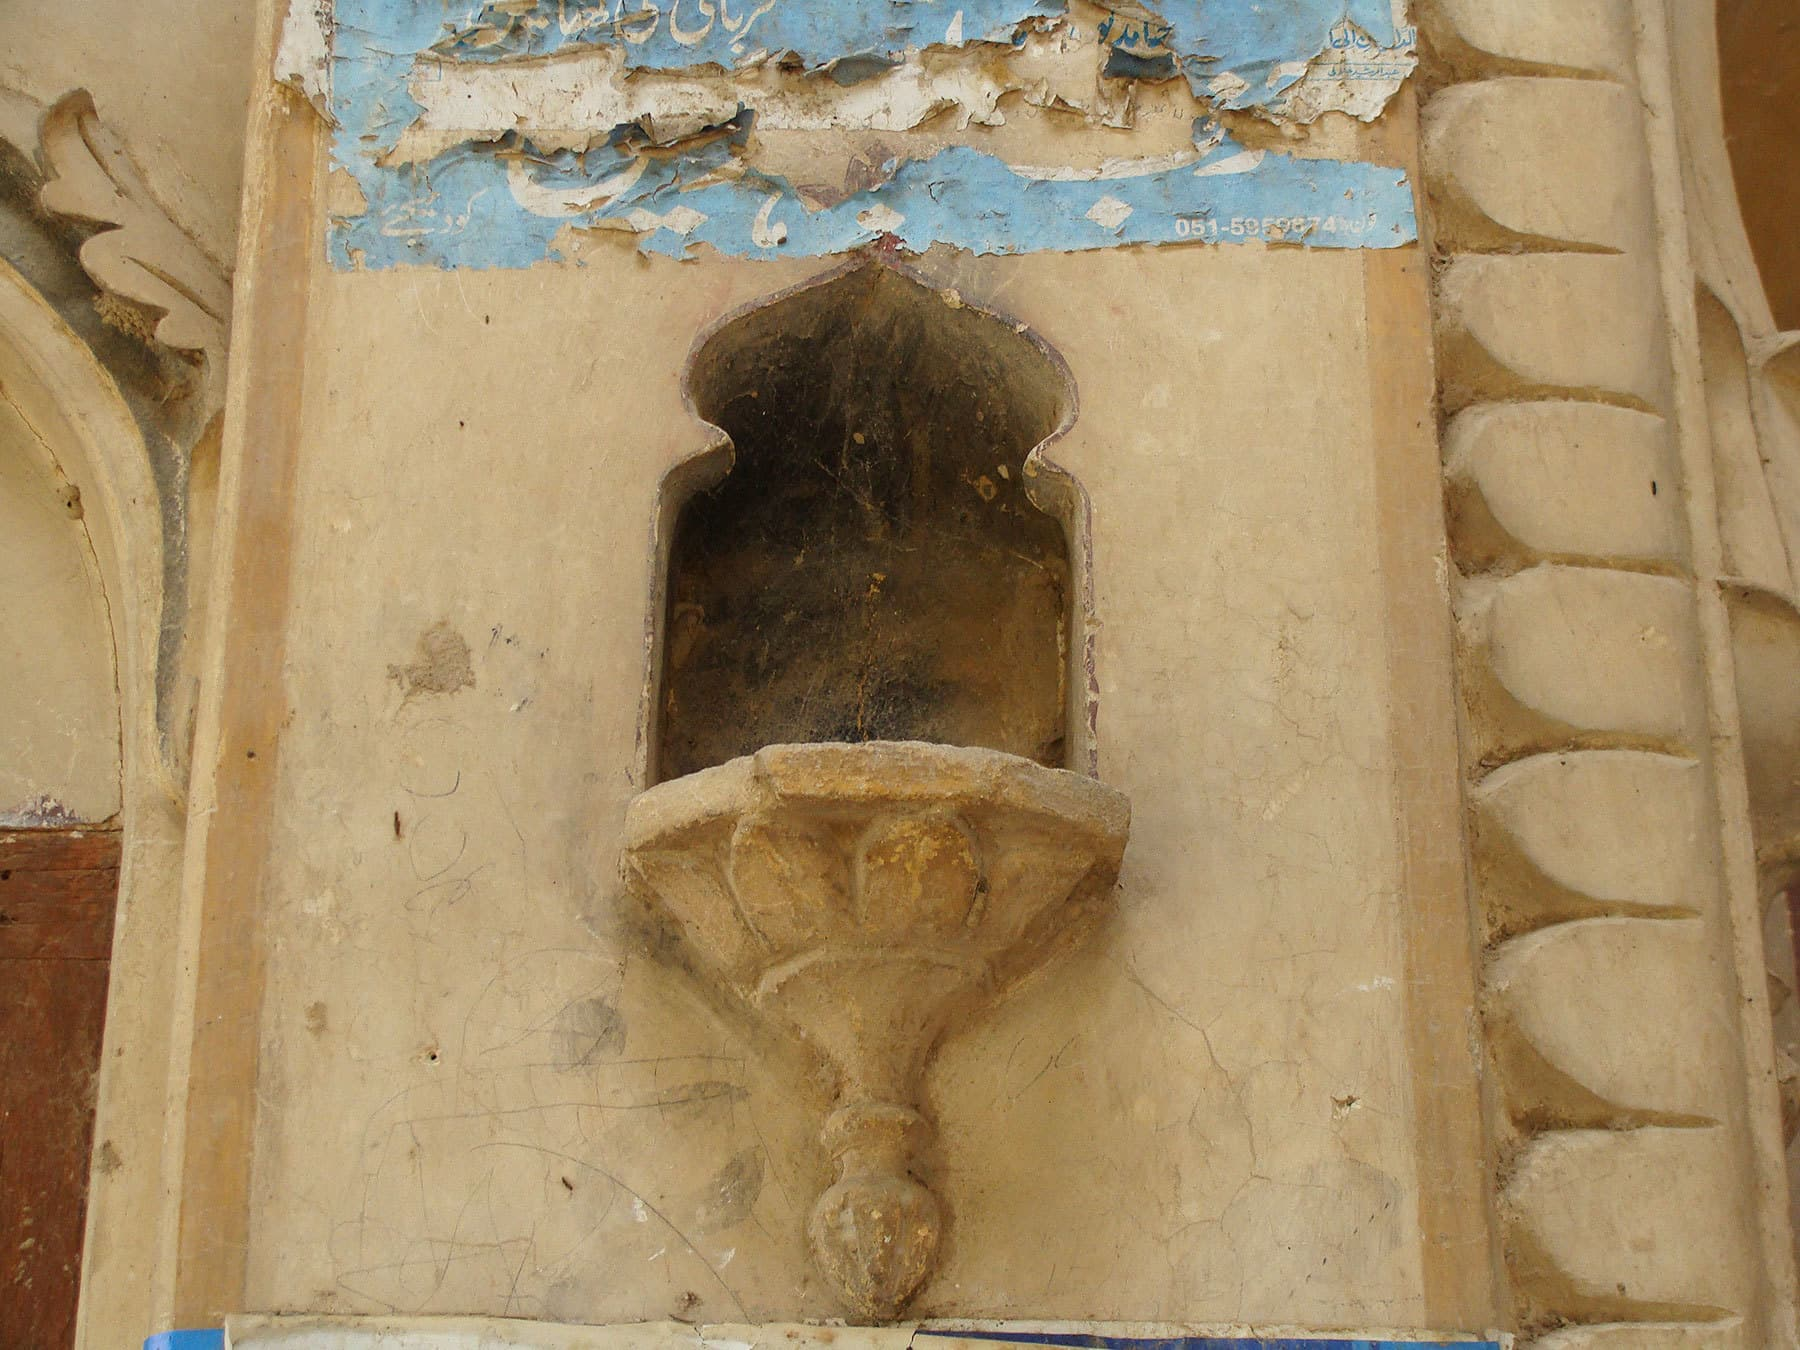 A decorative niche on one of the havelis.